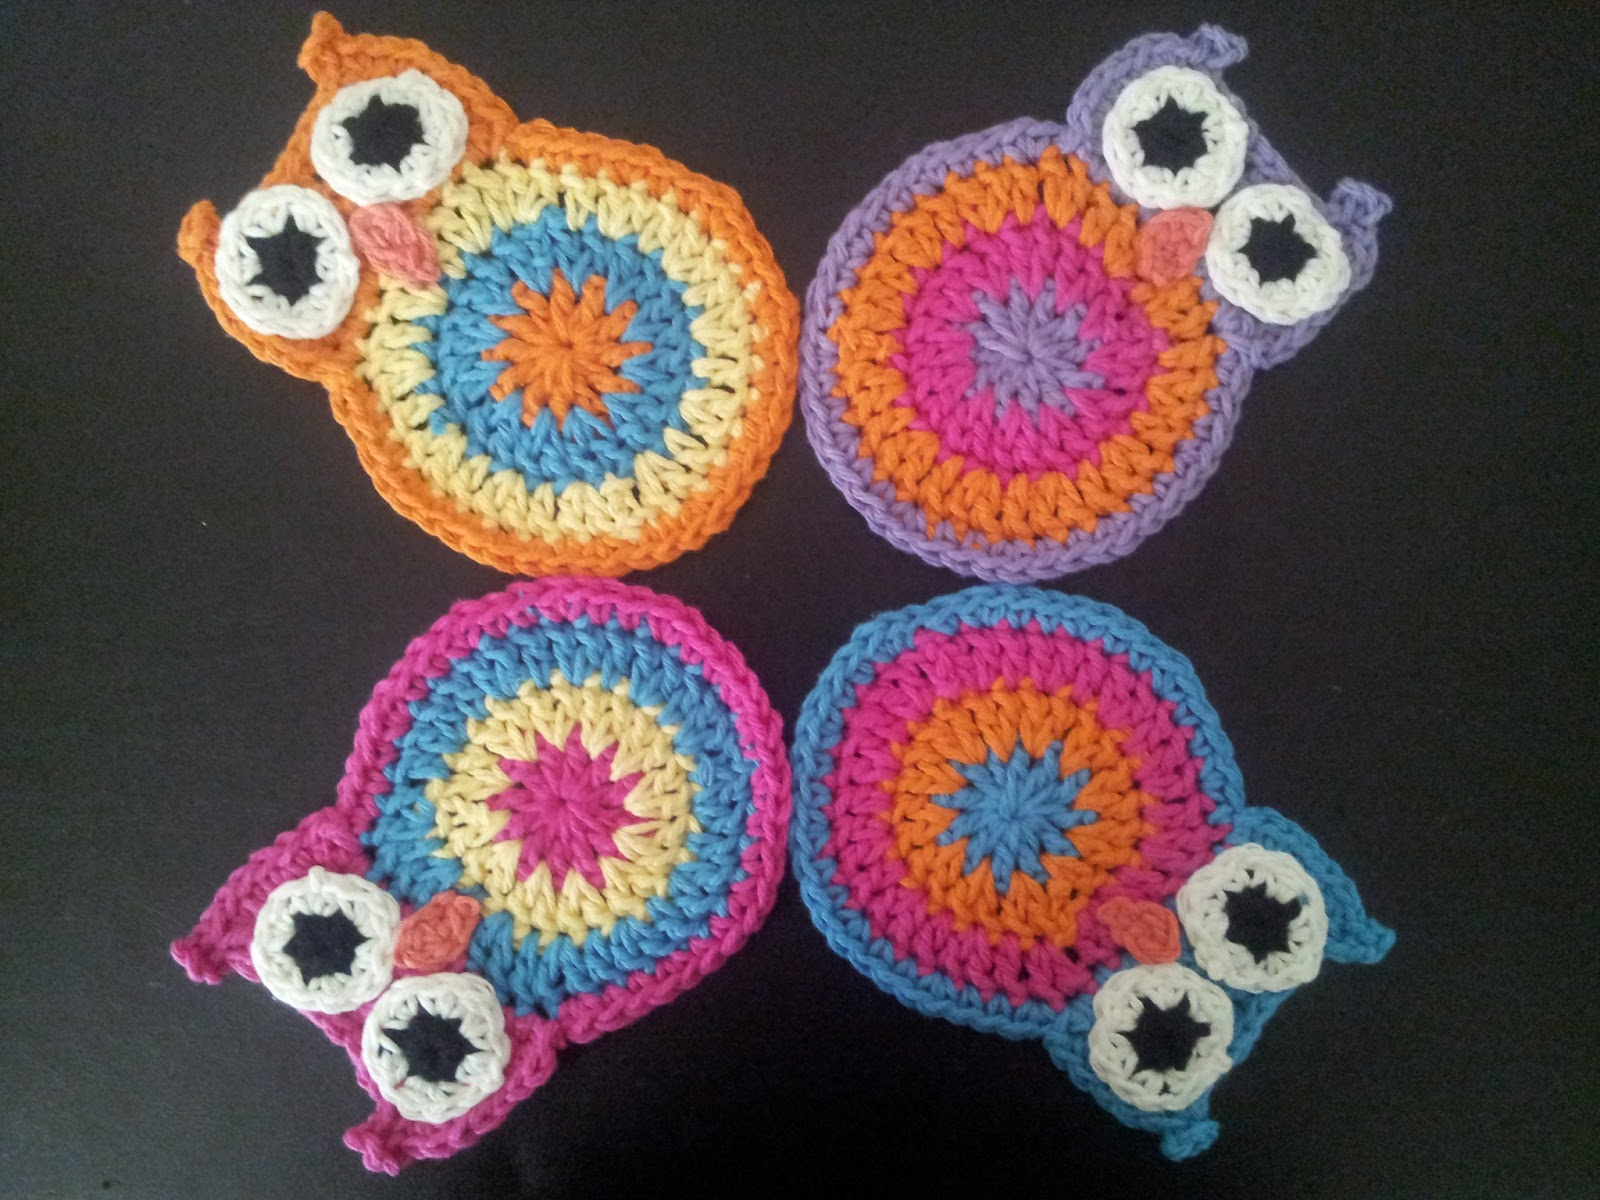 Crochet owl coasters free pattern manet for chirpinbirdie fun flower coaster crochet owl coasters free pattern bankloansurffo Images